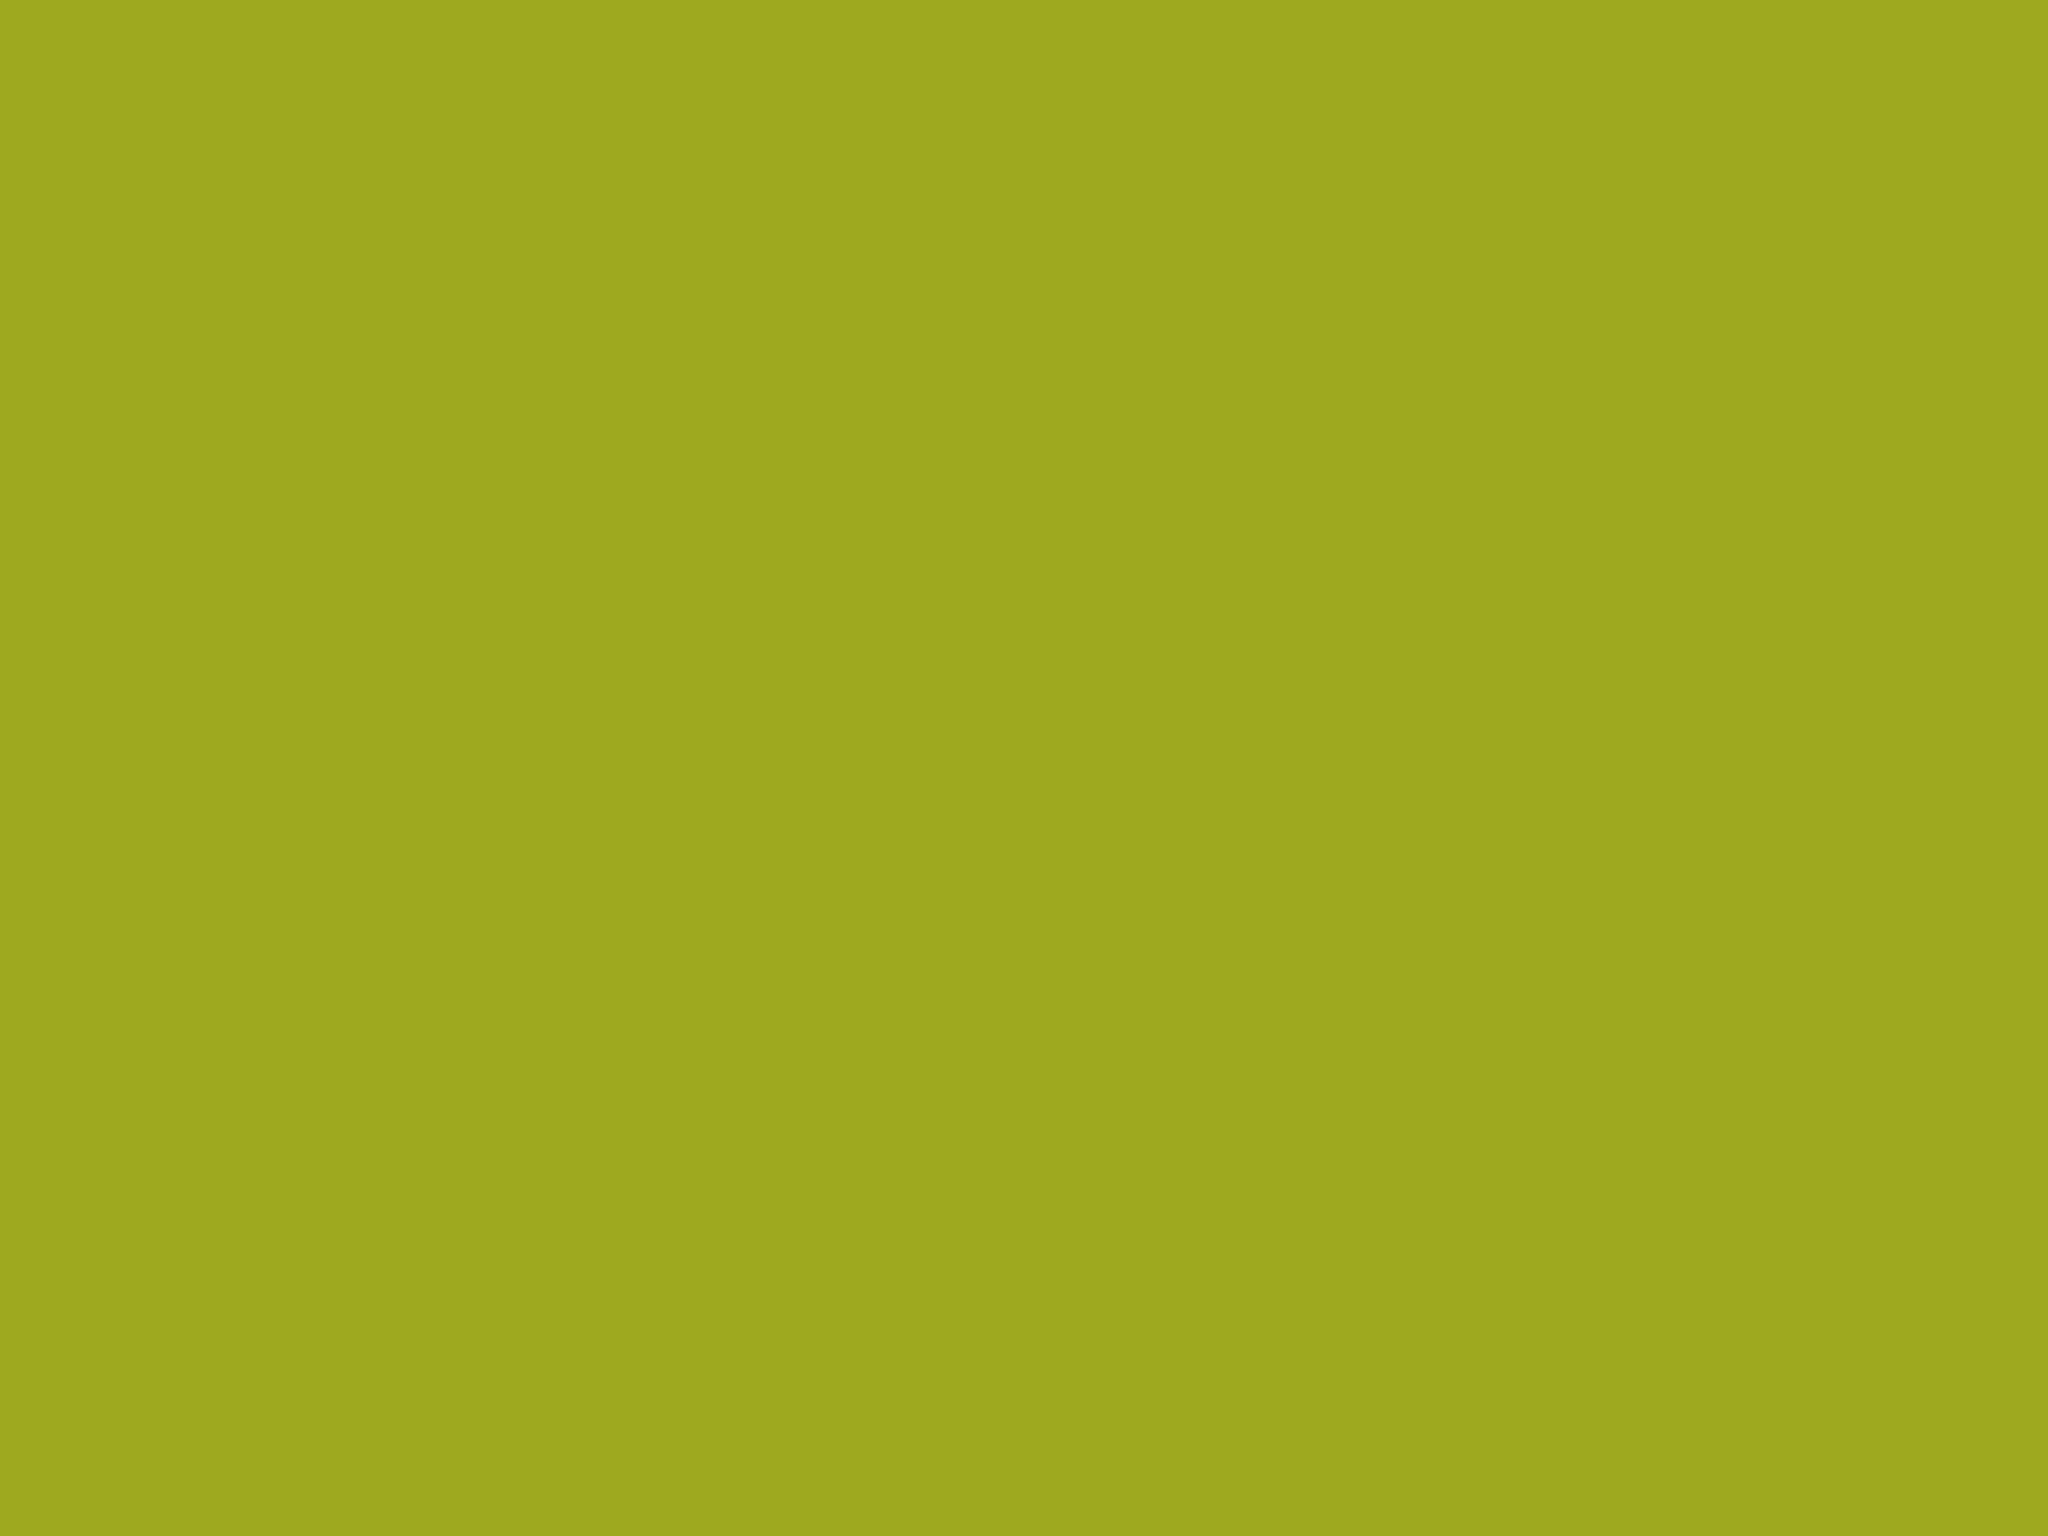 2048x1536 Citron Solid Color Background